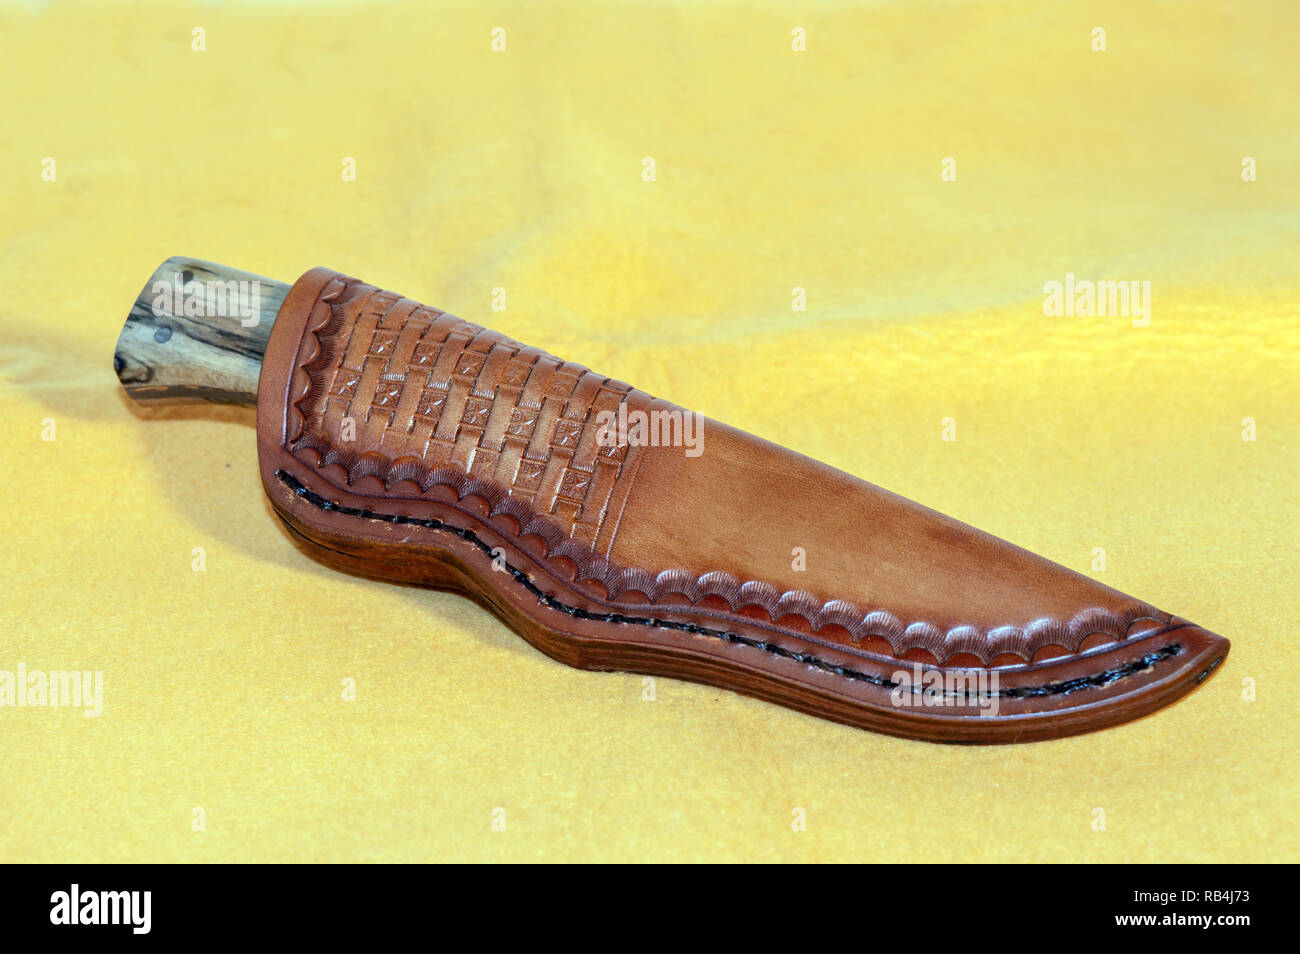 Knife Sheath High Resolution Stock Photography And Images Alamy